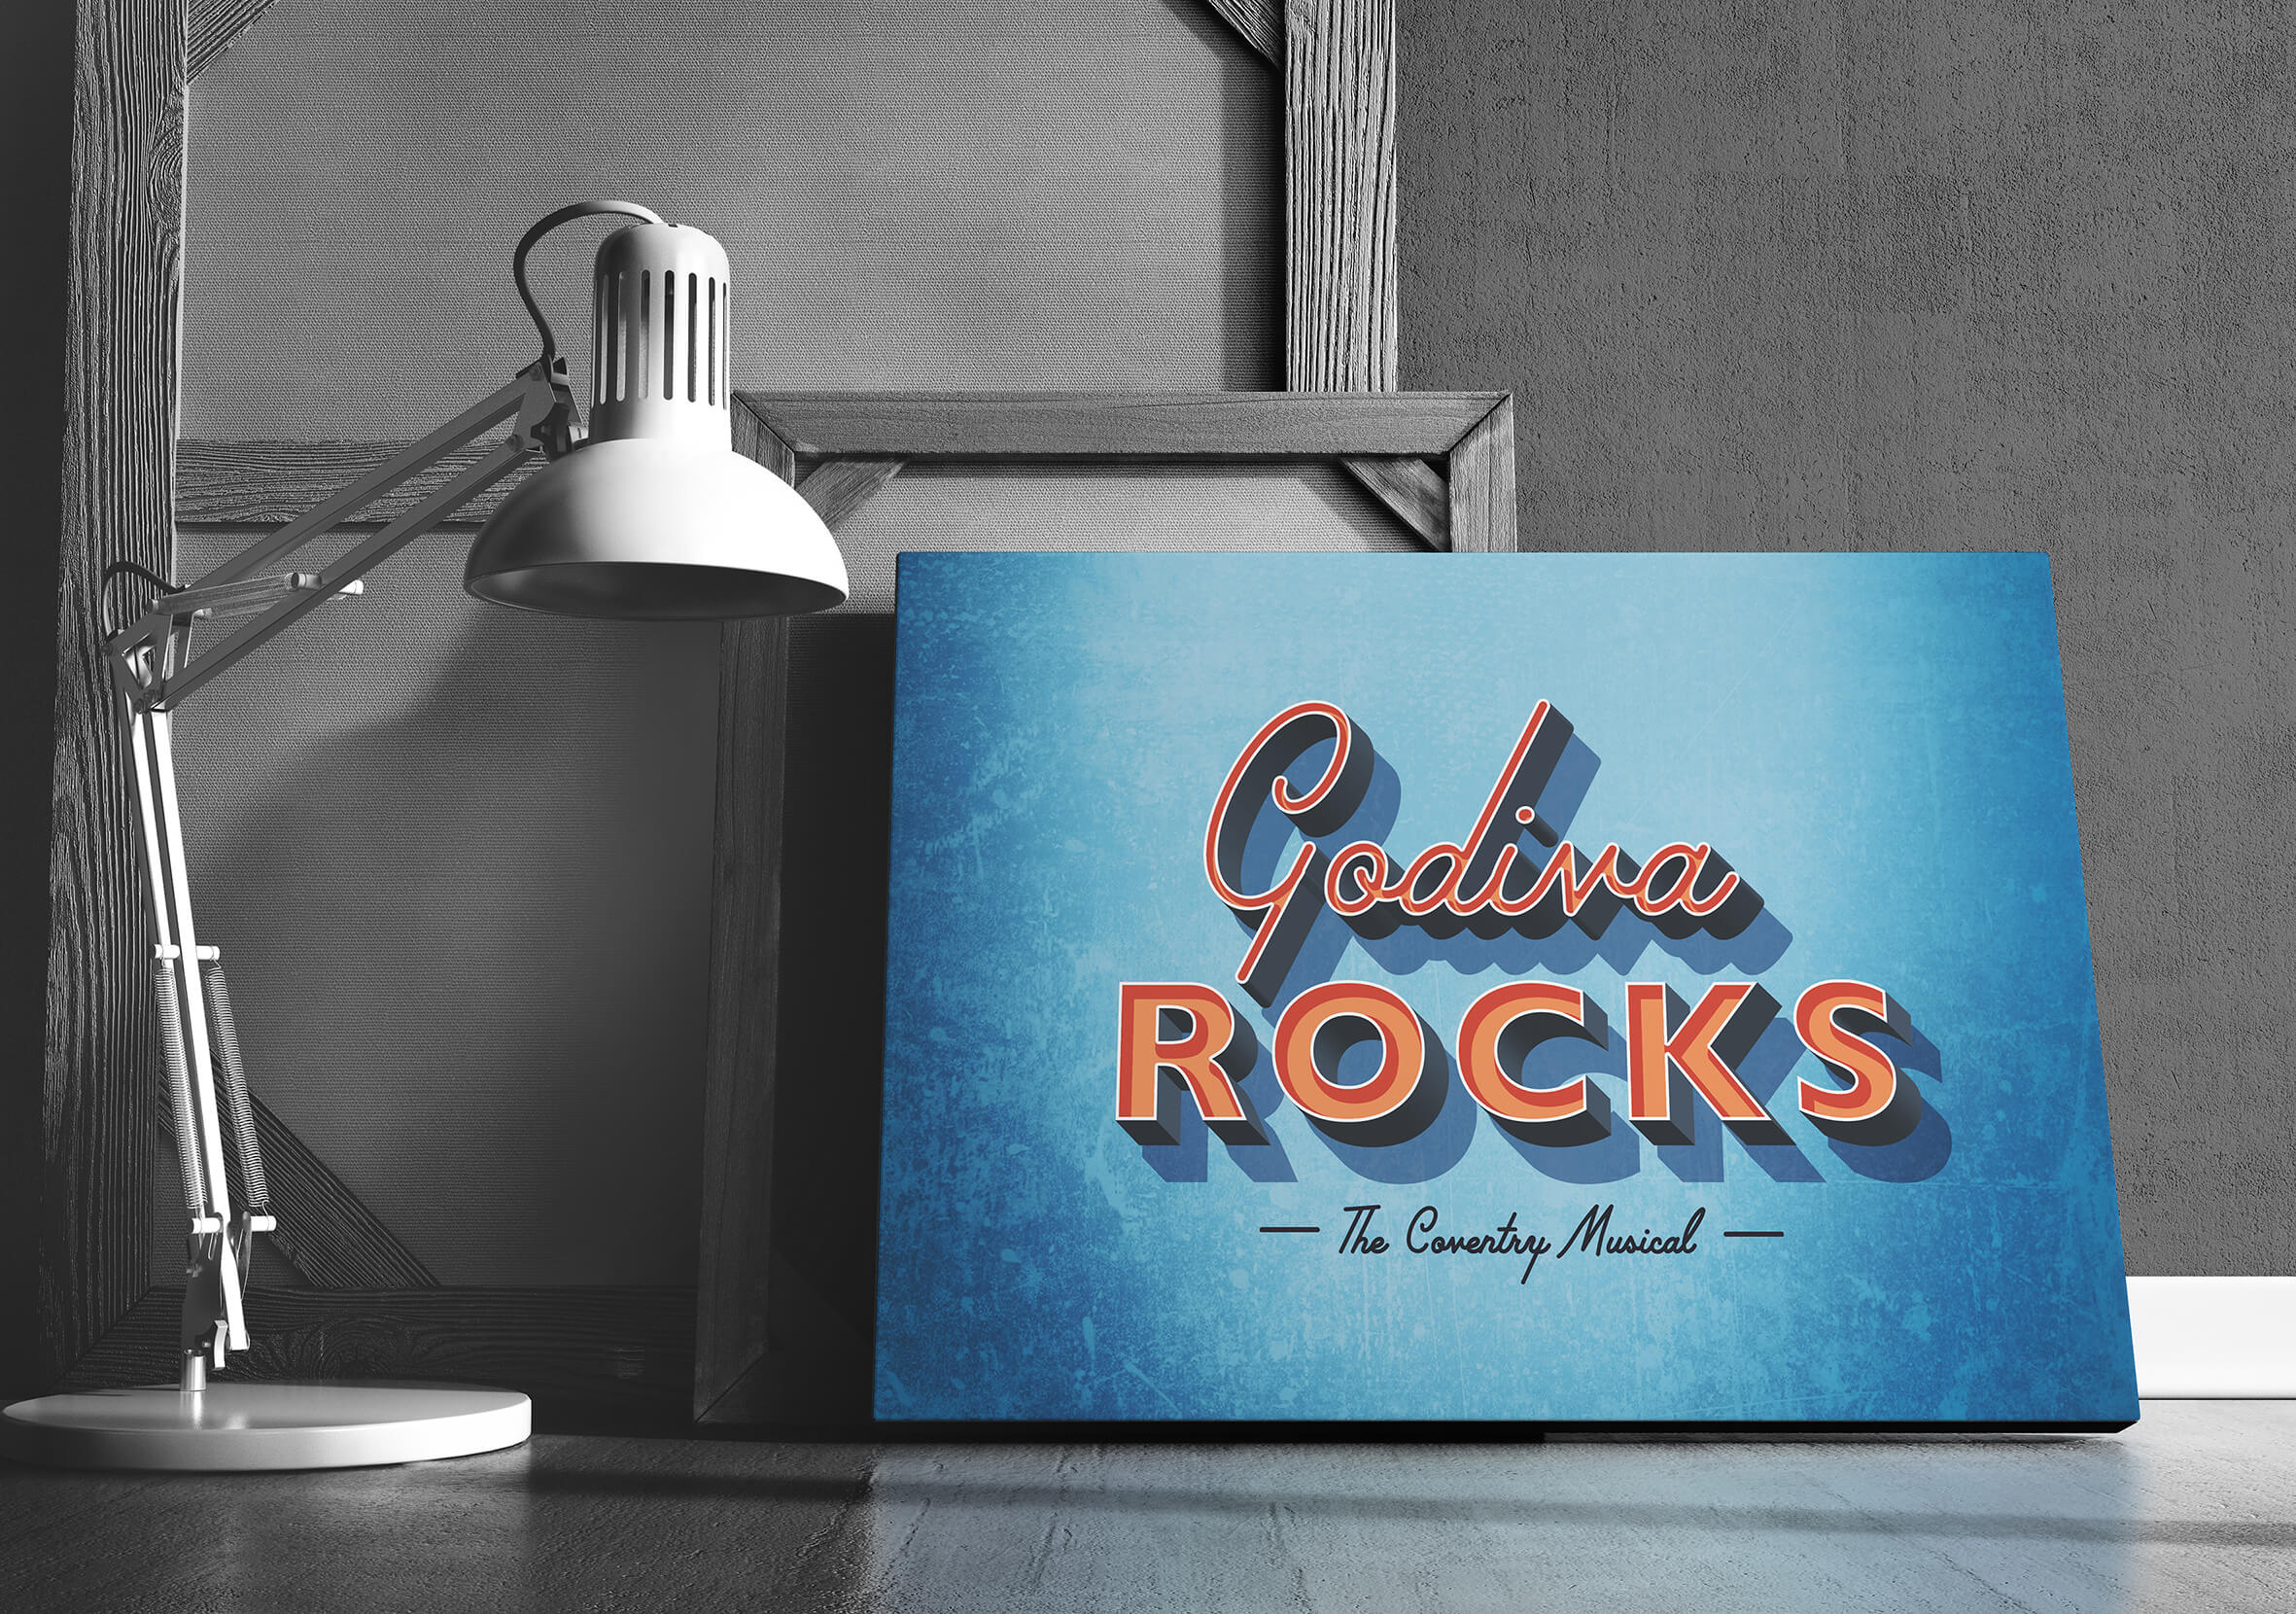 Title treatment design based on the look and feel of a 1960's diner